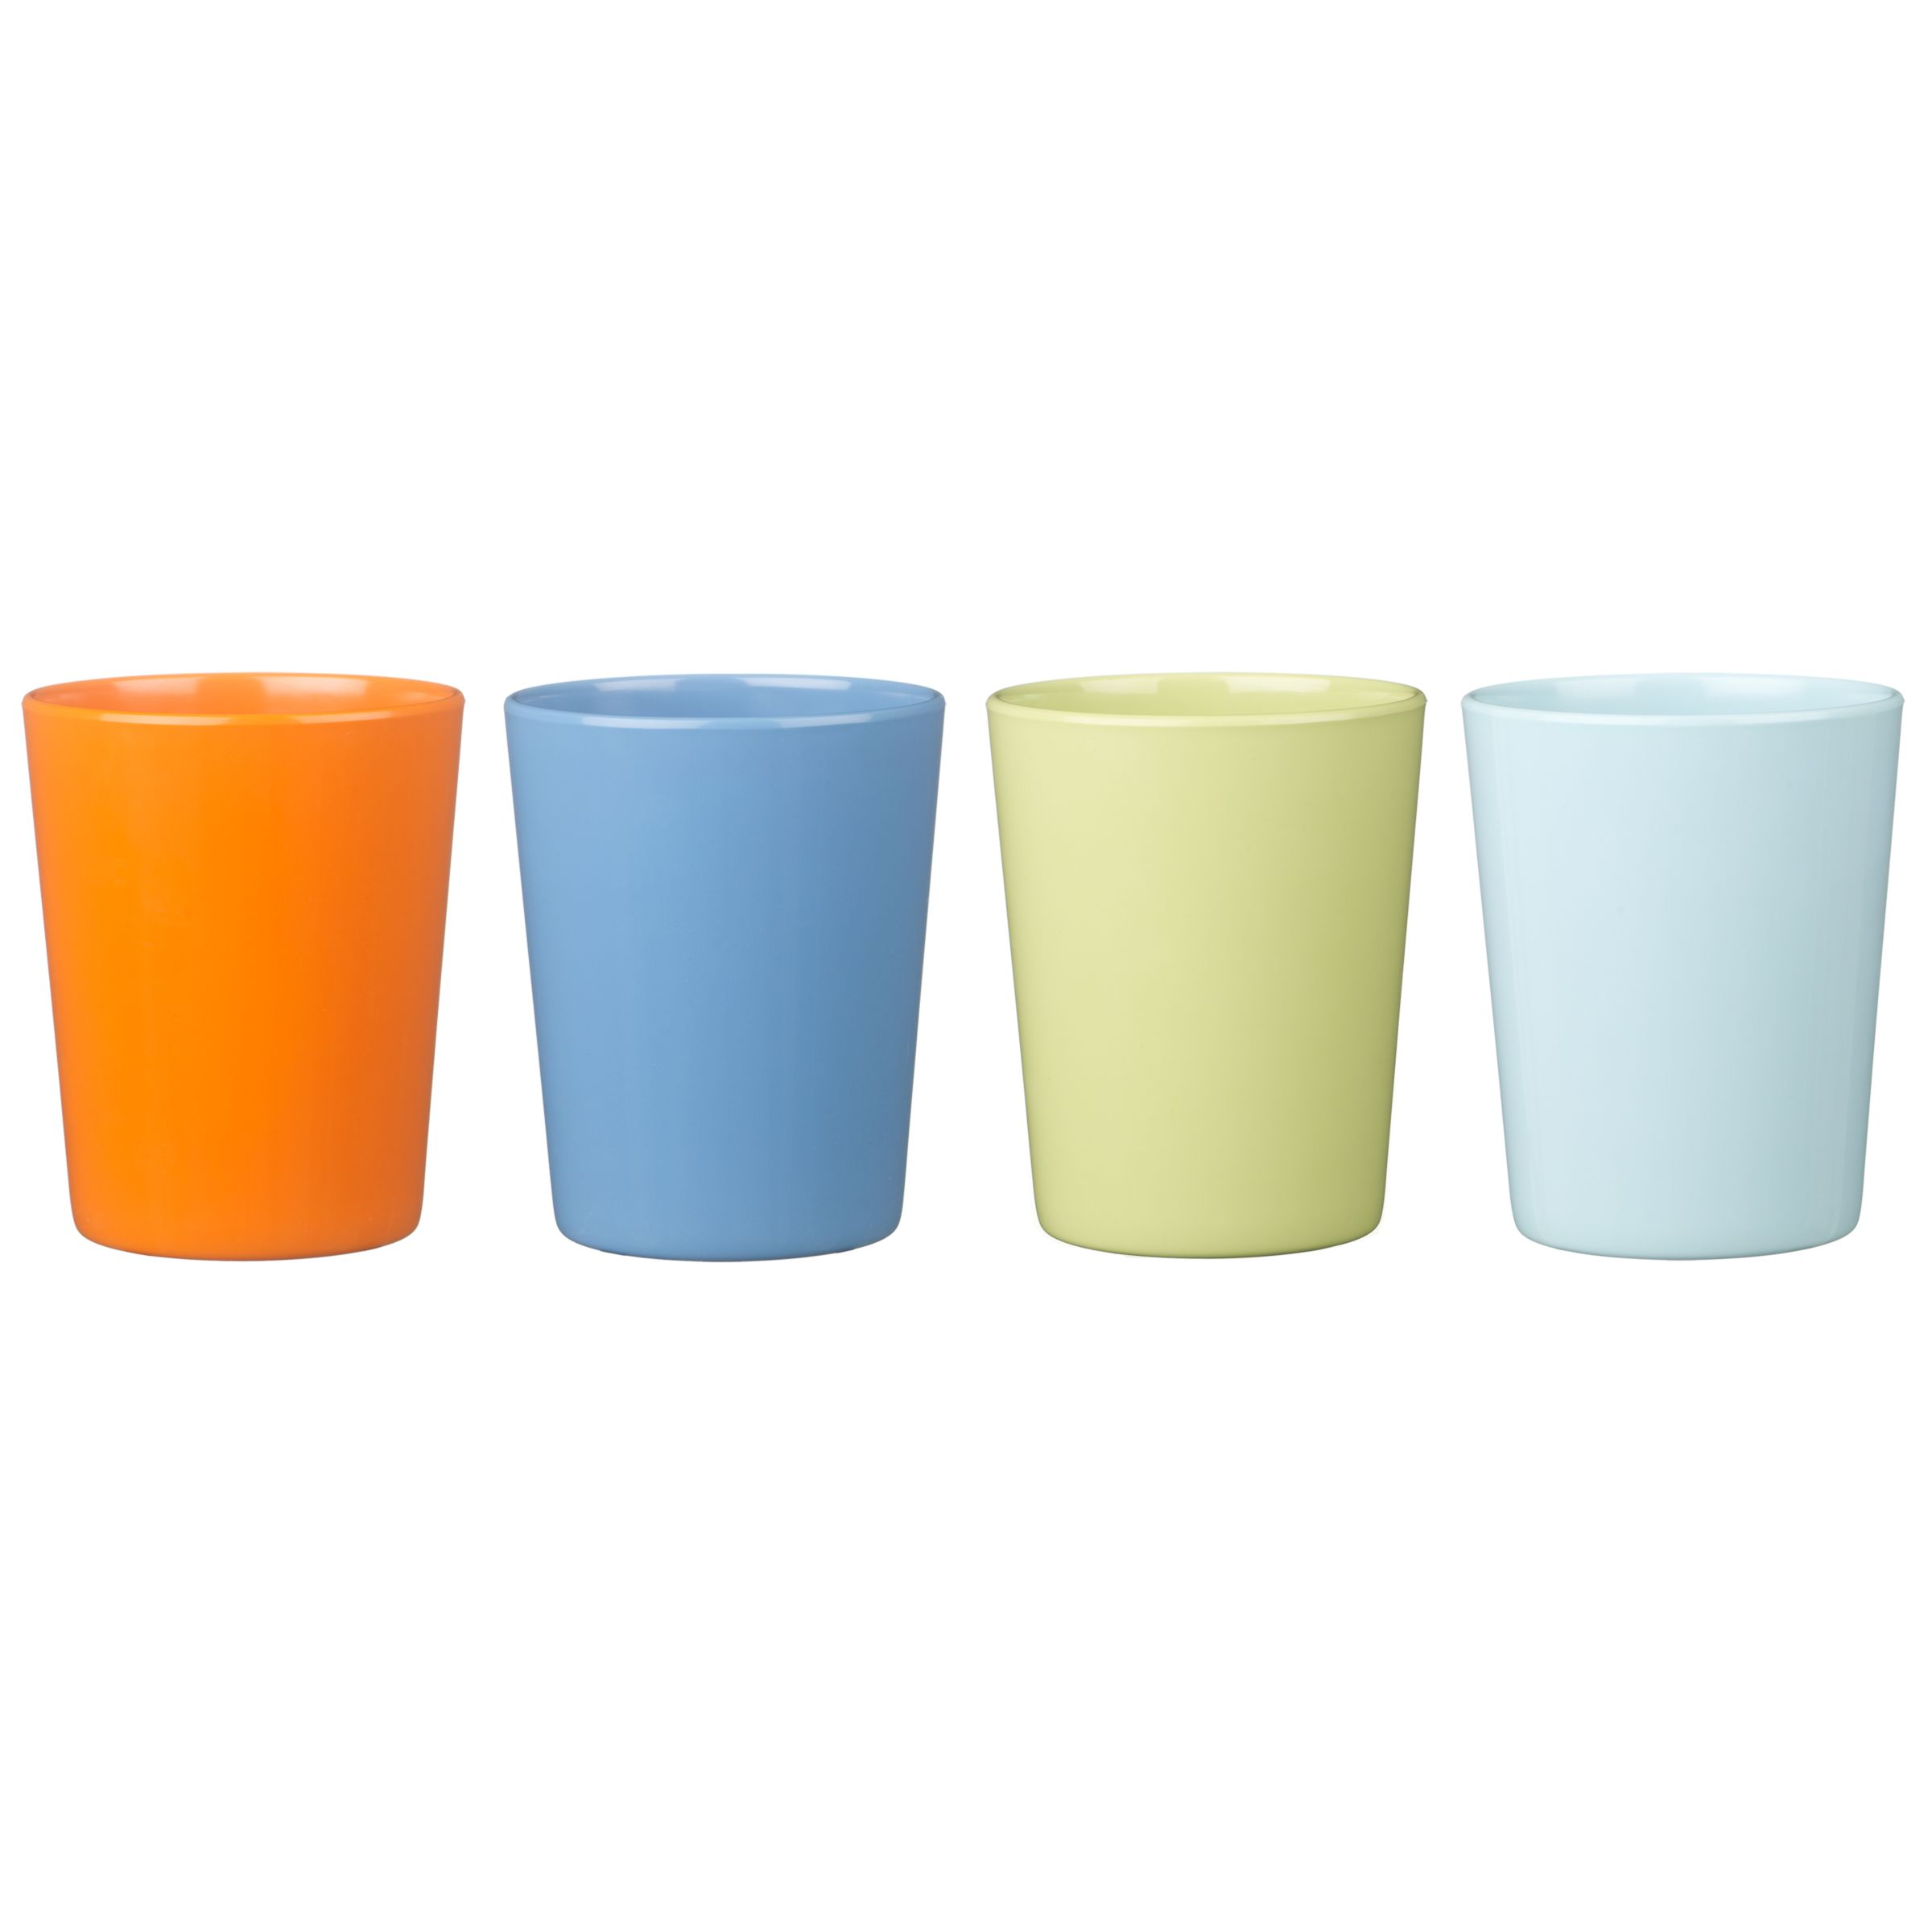 little home at John Lewis, Robots and Rivets, Bright Beakers, Set of 4